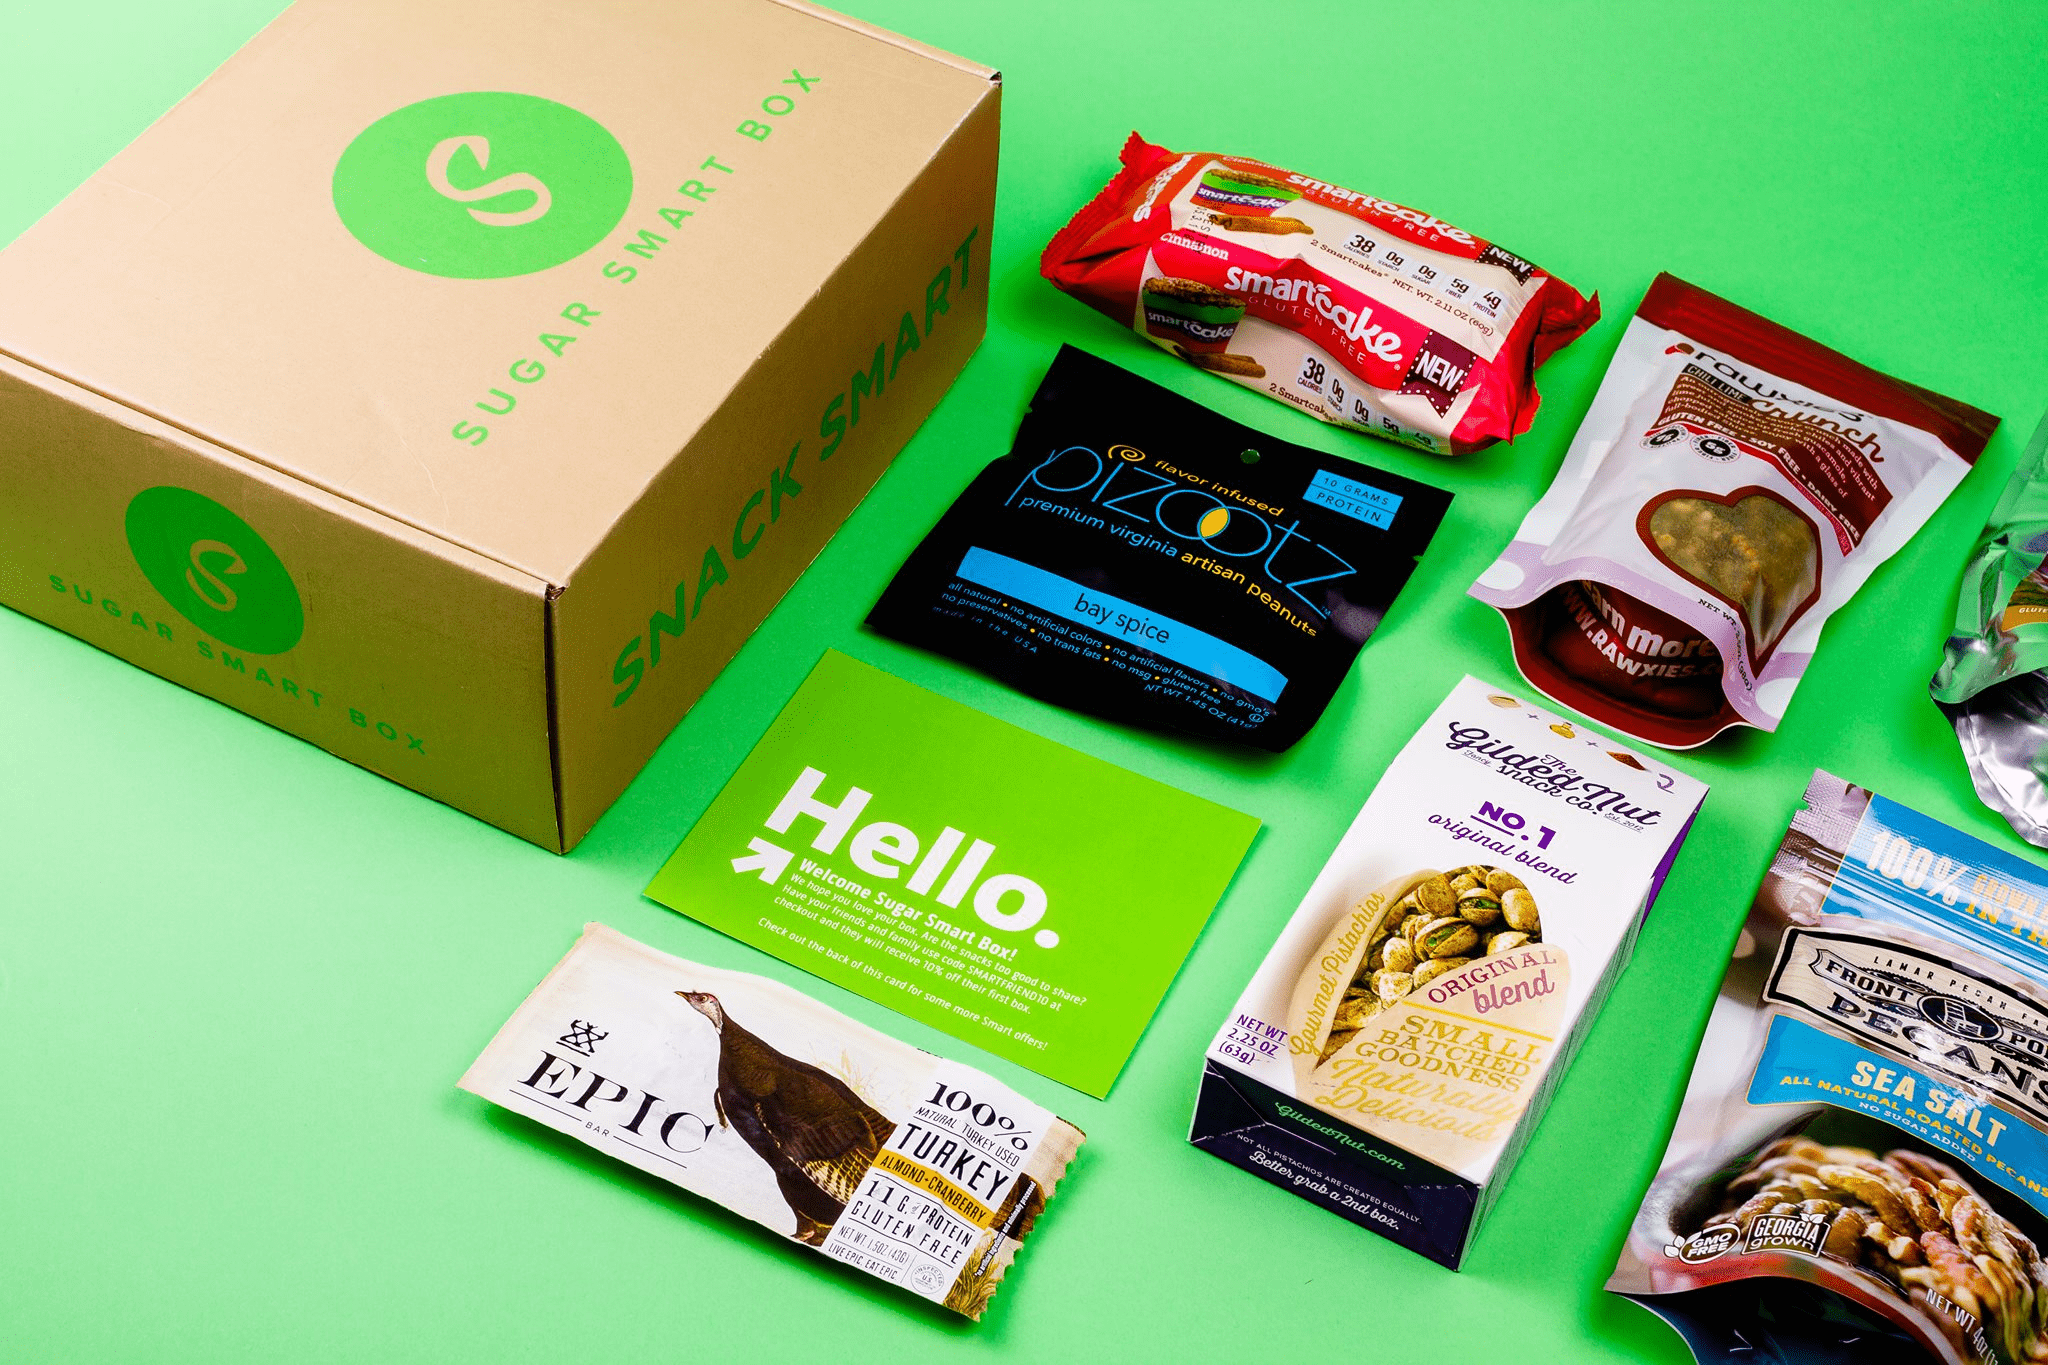 Sugar Smart Box Cyber Monday Coupon: Get 25% off your first box!